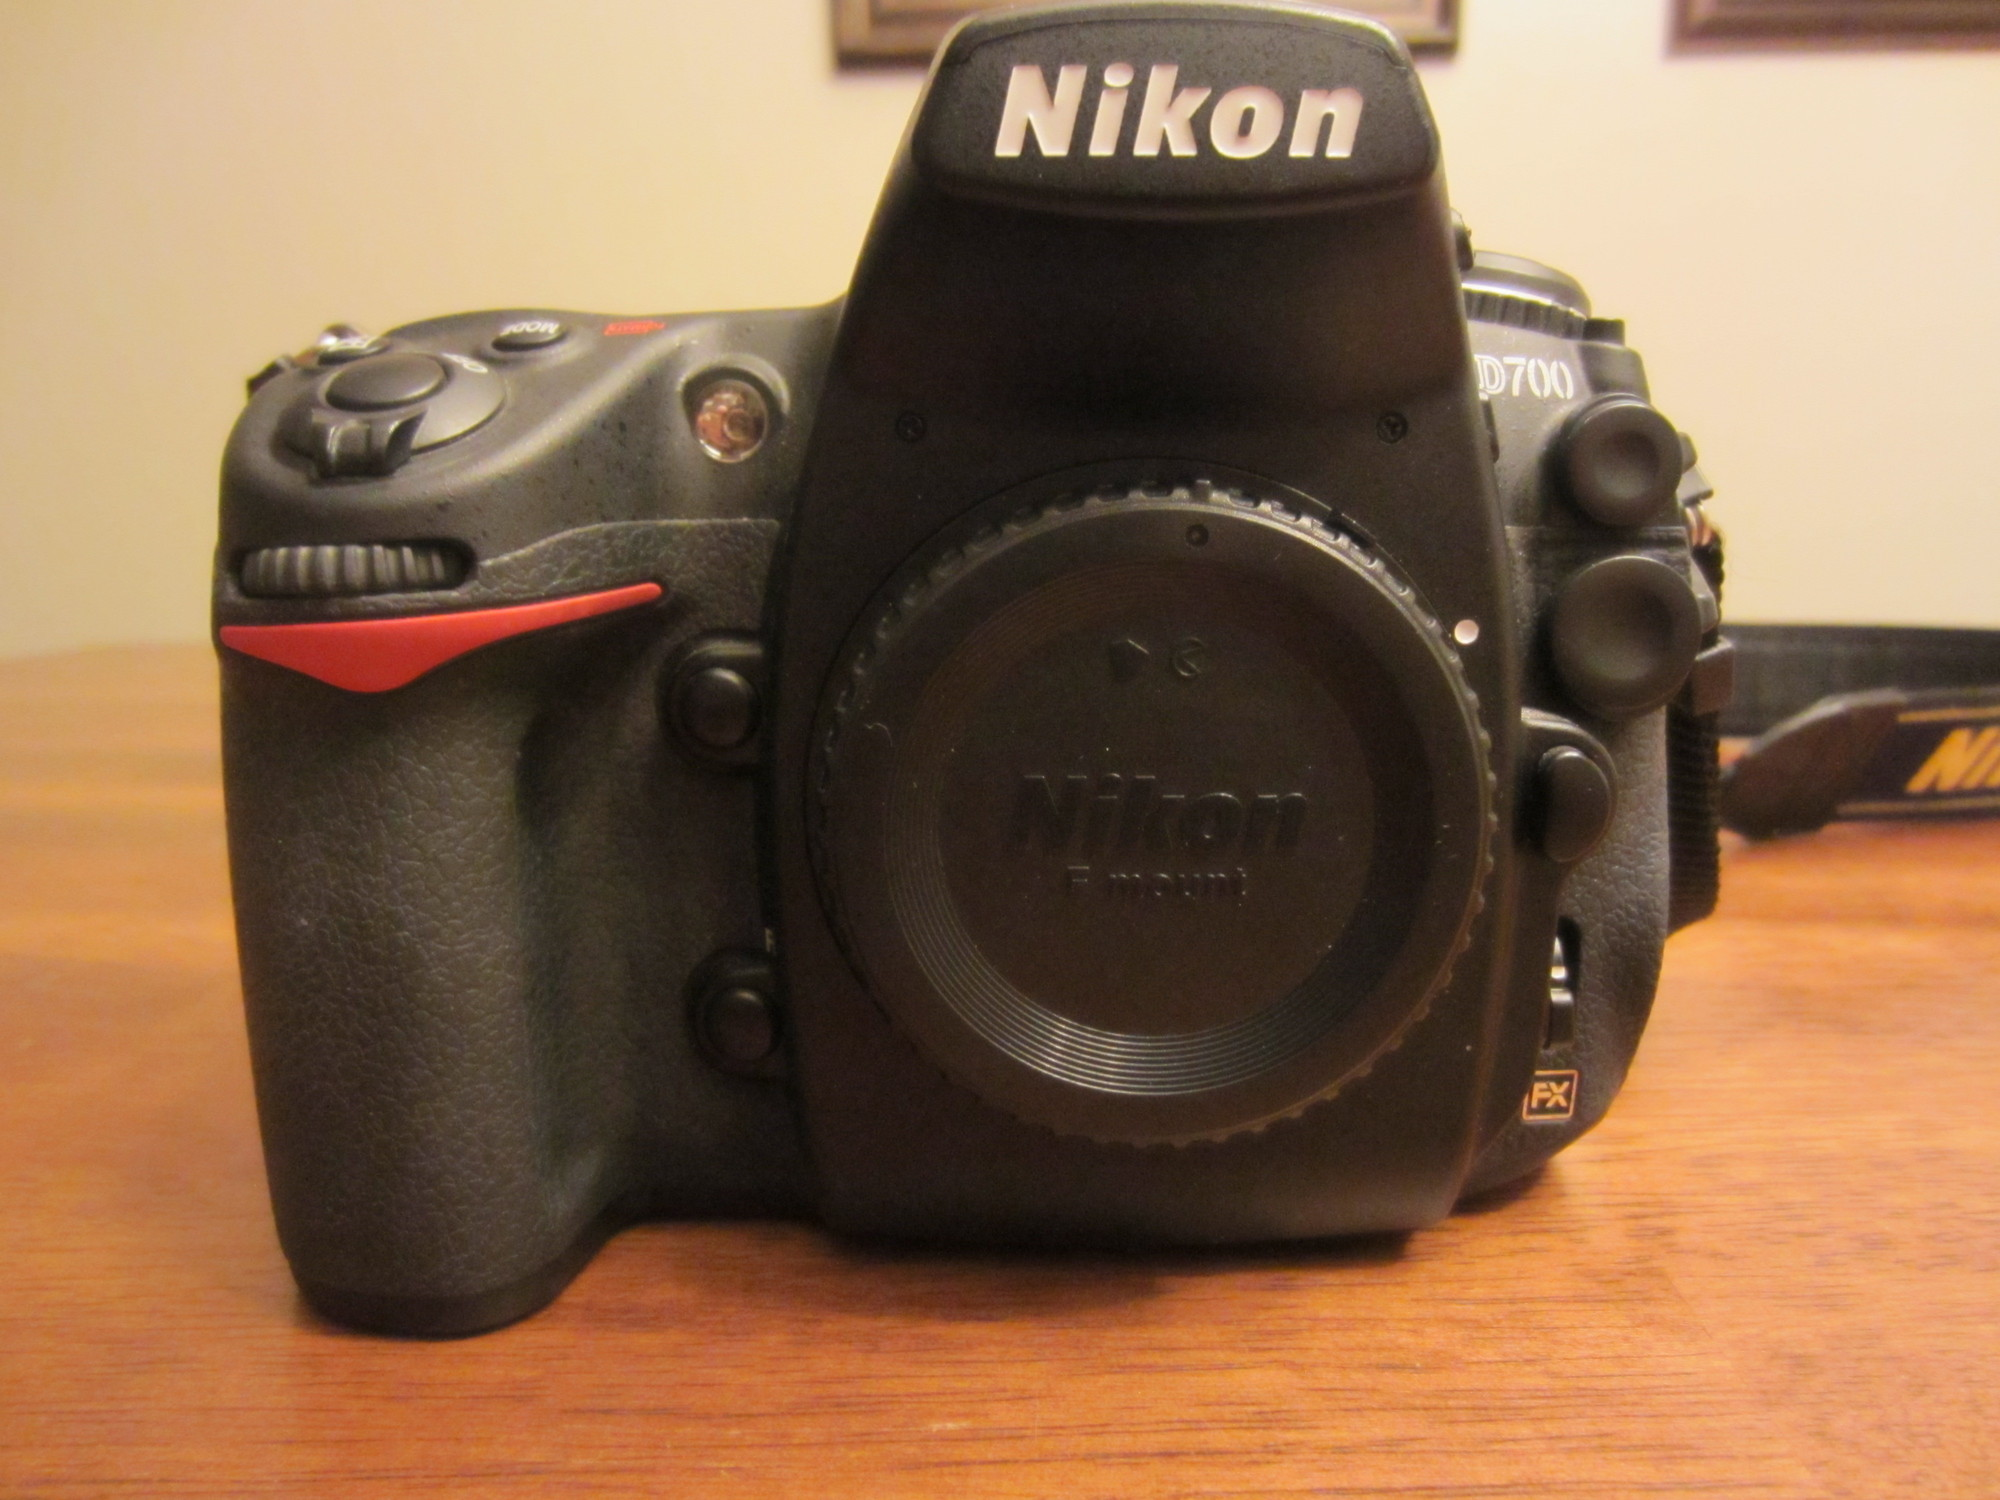 nikon d700 deals coupon classes in houston rh futbolgratis tk Nikon D7200 nikon d700 user guide